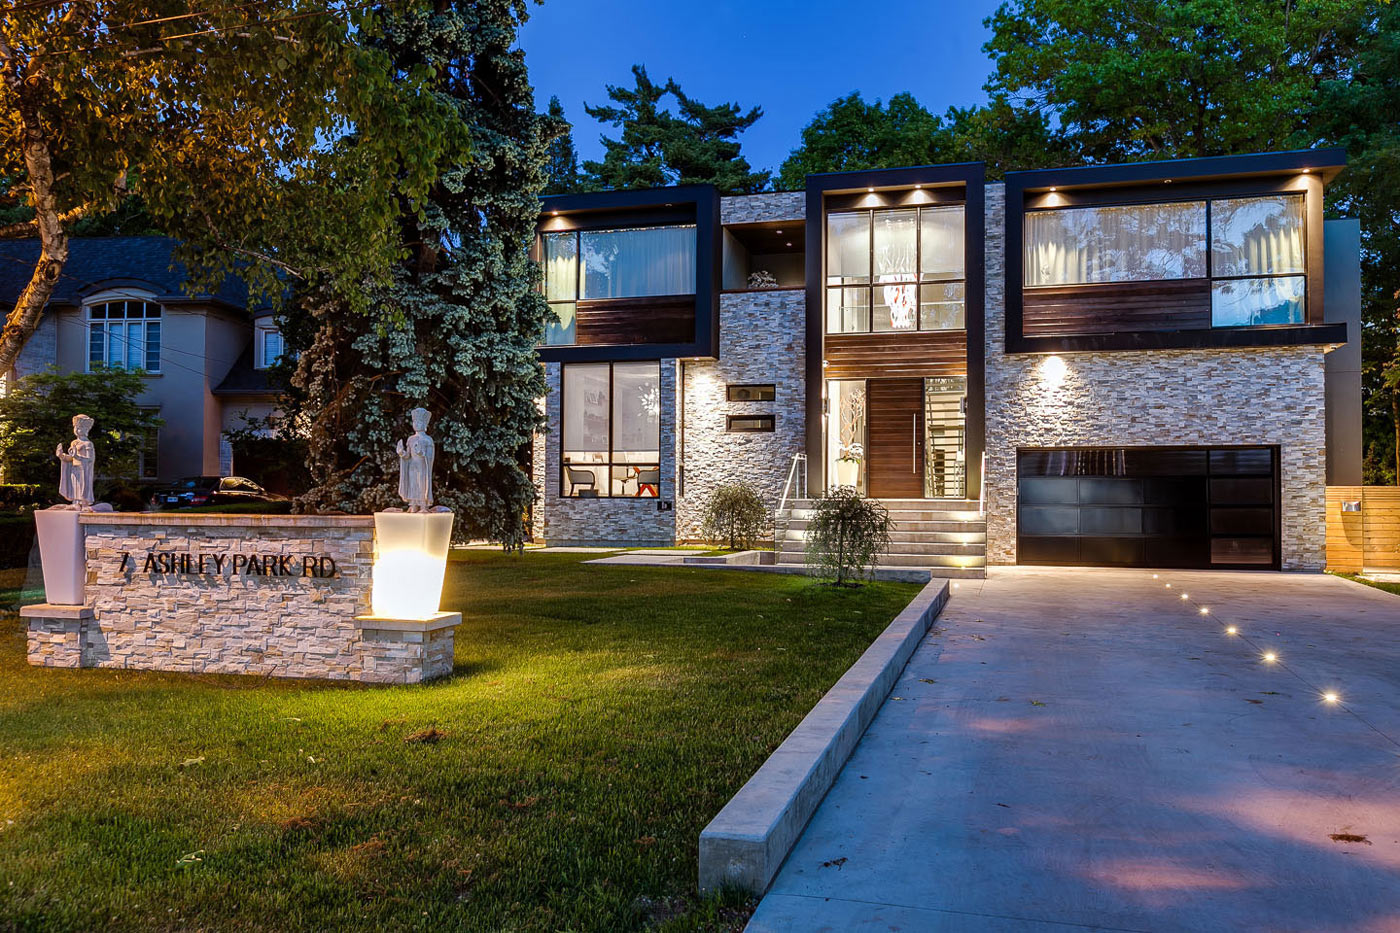 Driveway, Garage, Lighting, Contemporary House in Toronto, Canada